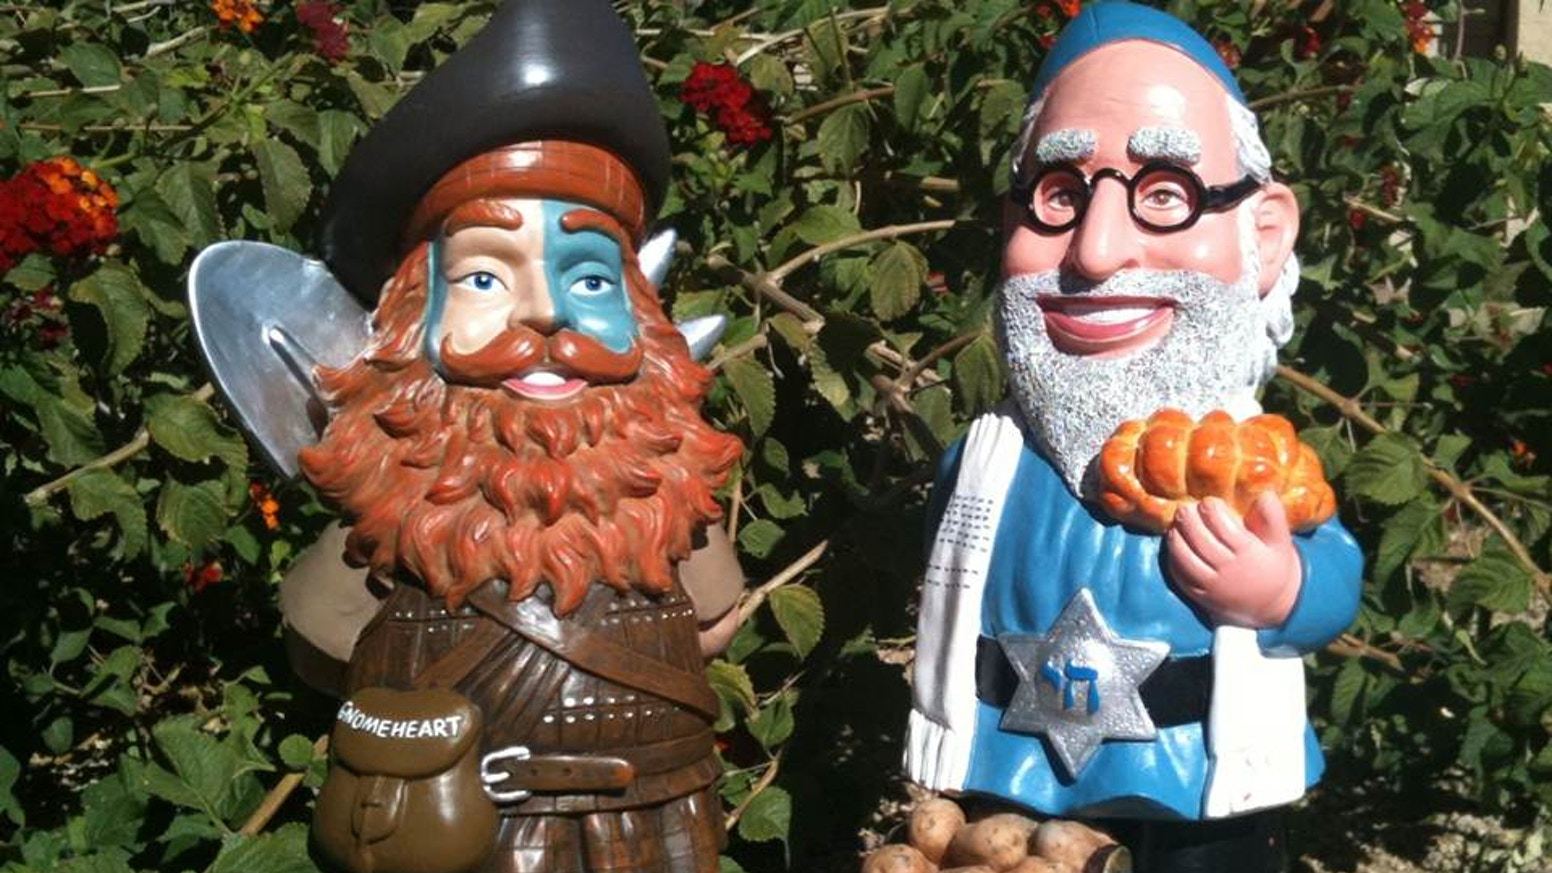 Gnome In Garden: Shalom Gnome & GnomeHeart The Coolest Garden Gnomes! By